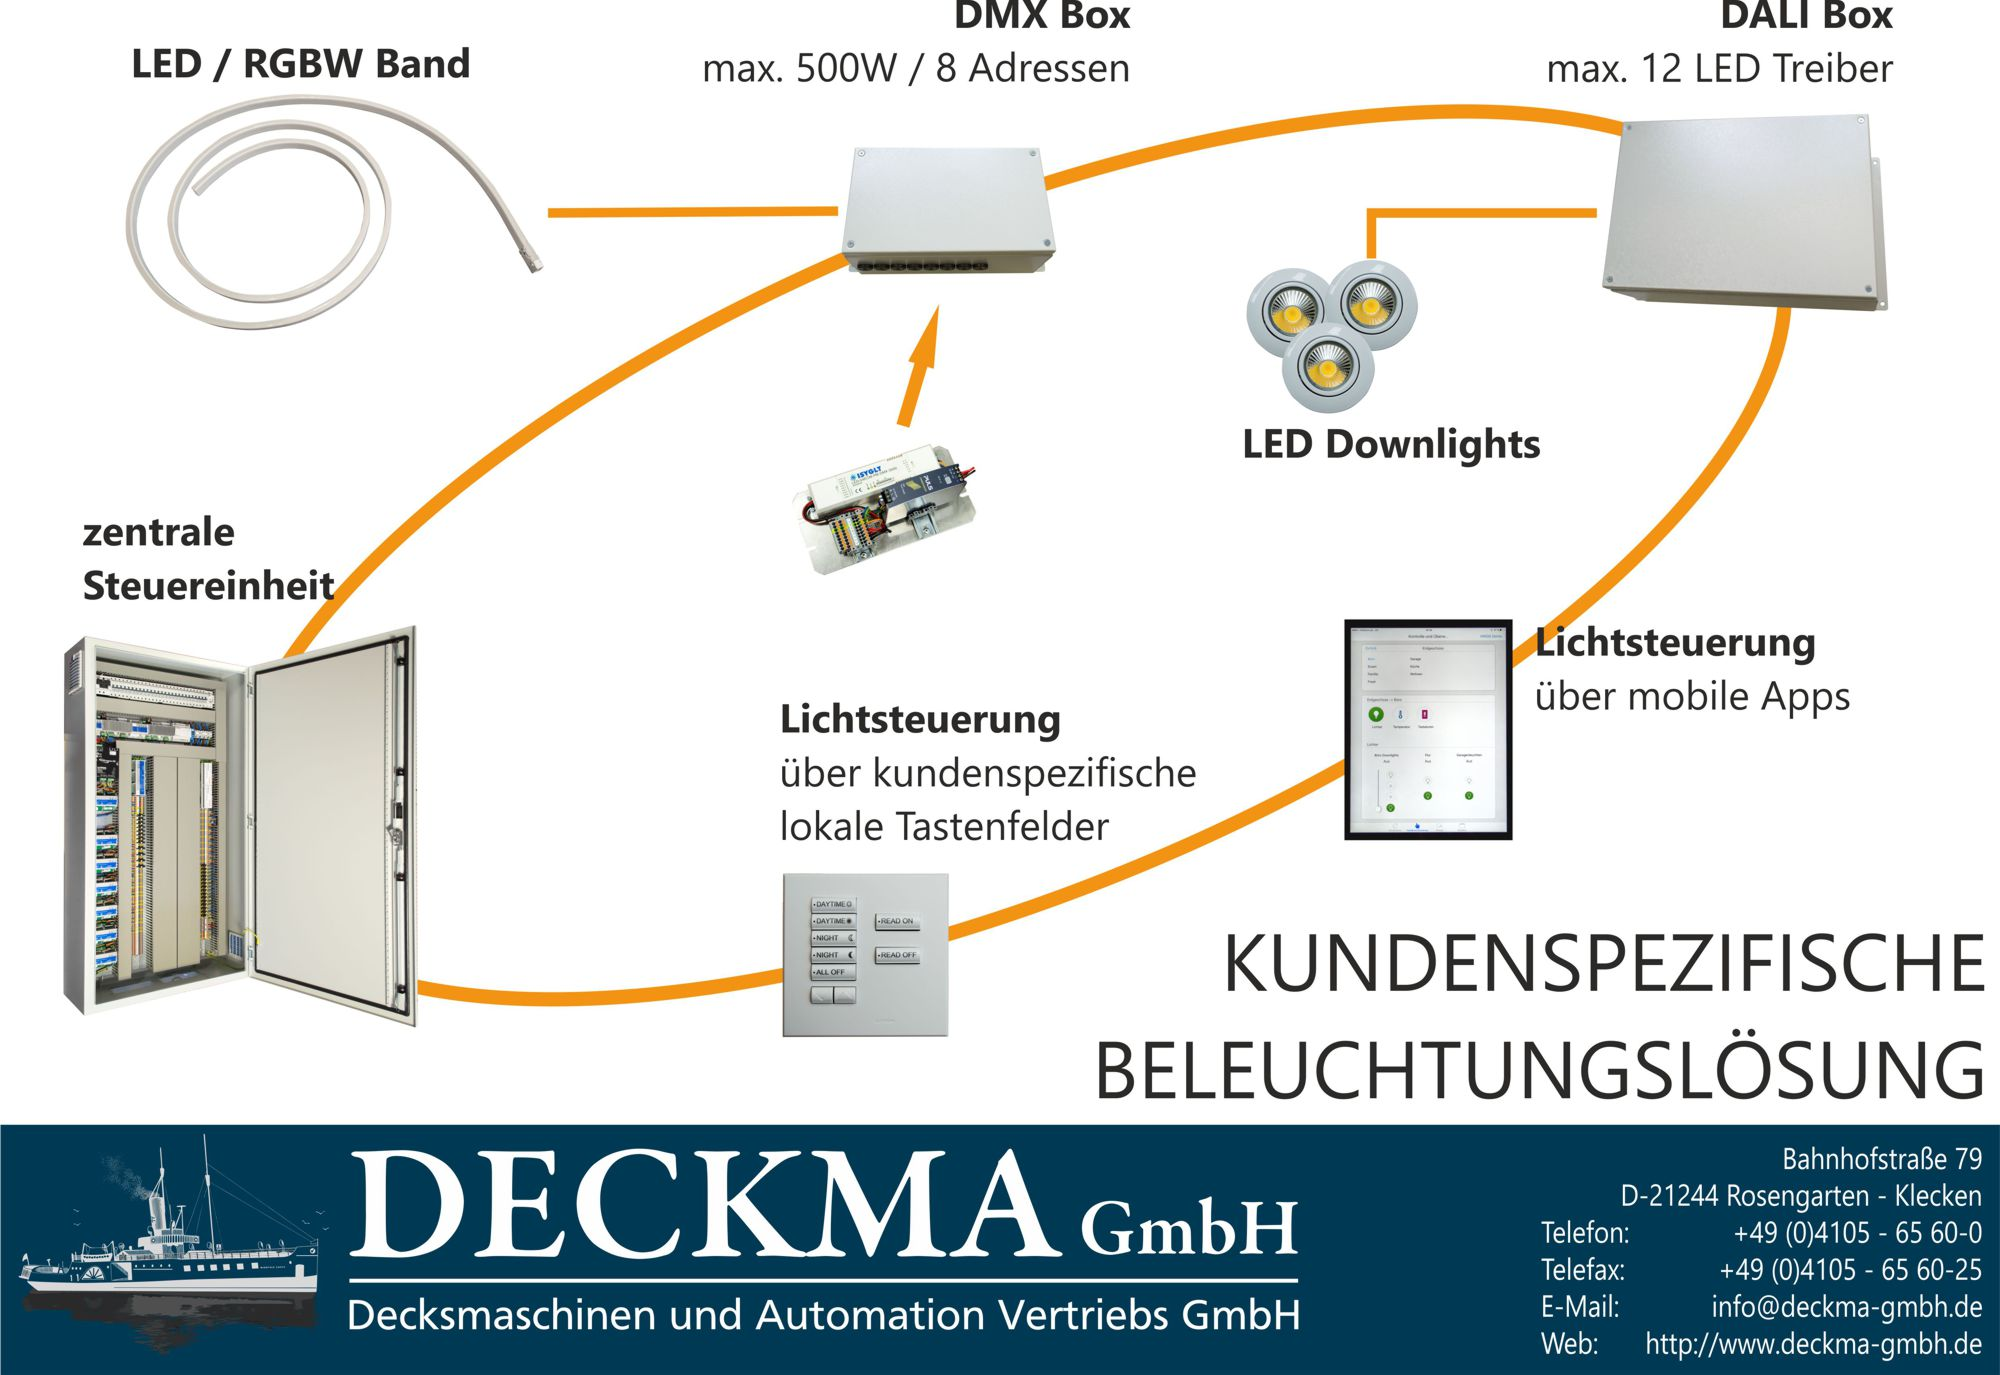 Performance Deckma Gmbh Leds Dimmer Circuit And Alarm Project Engineering Manufacture Of System